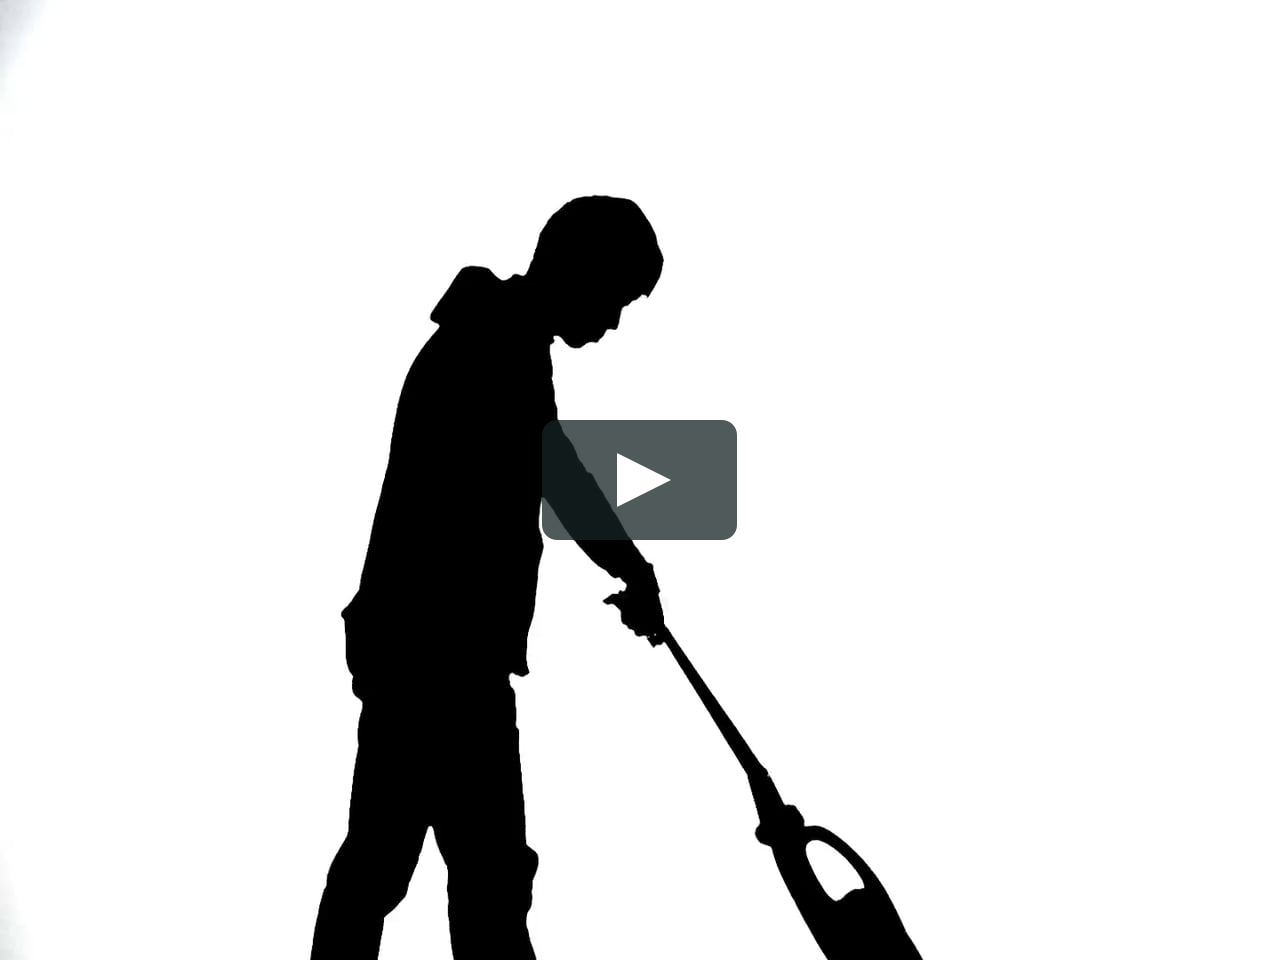 Silhouette Clean up on Vimeo